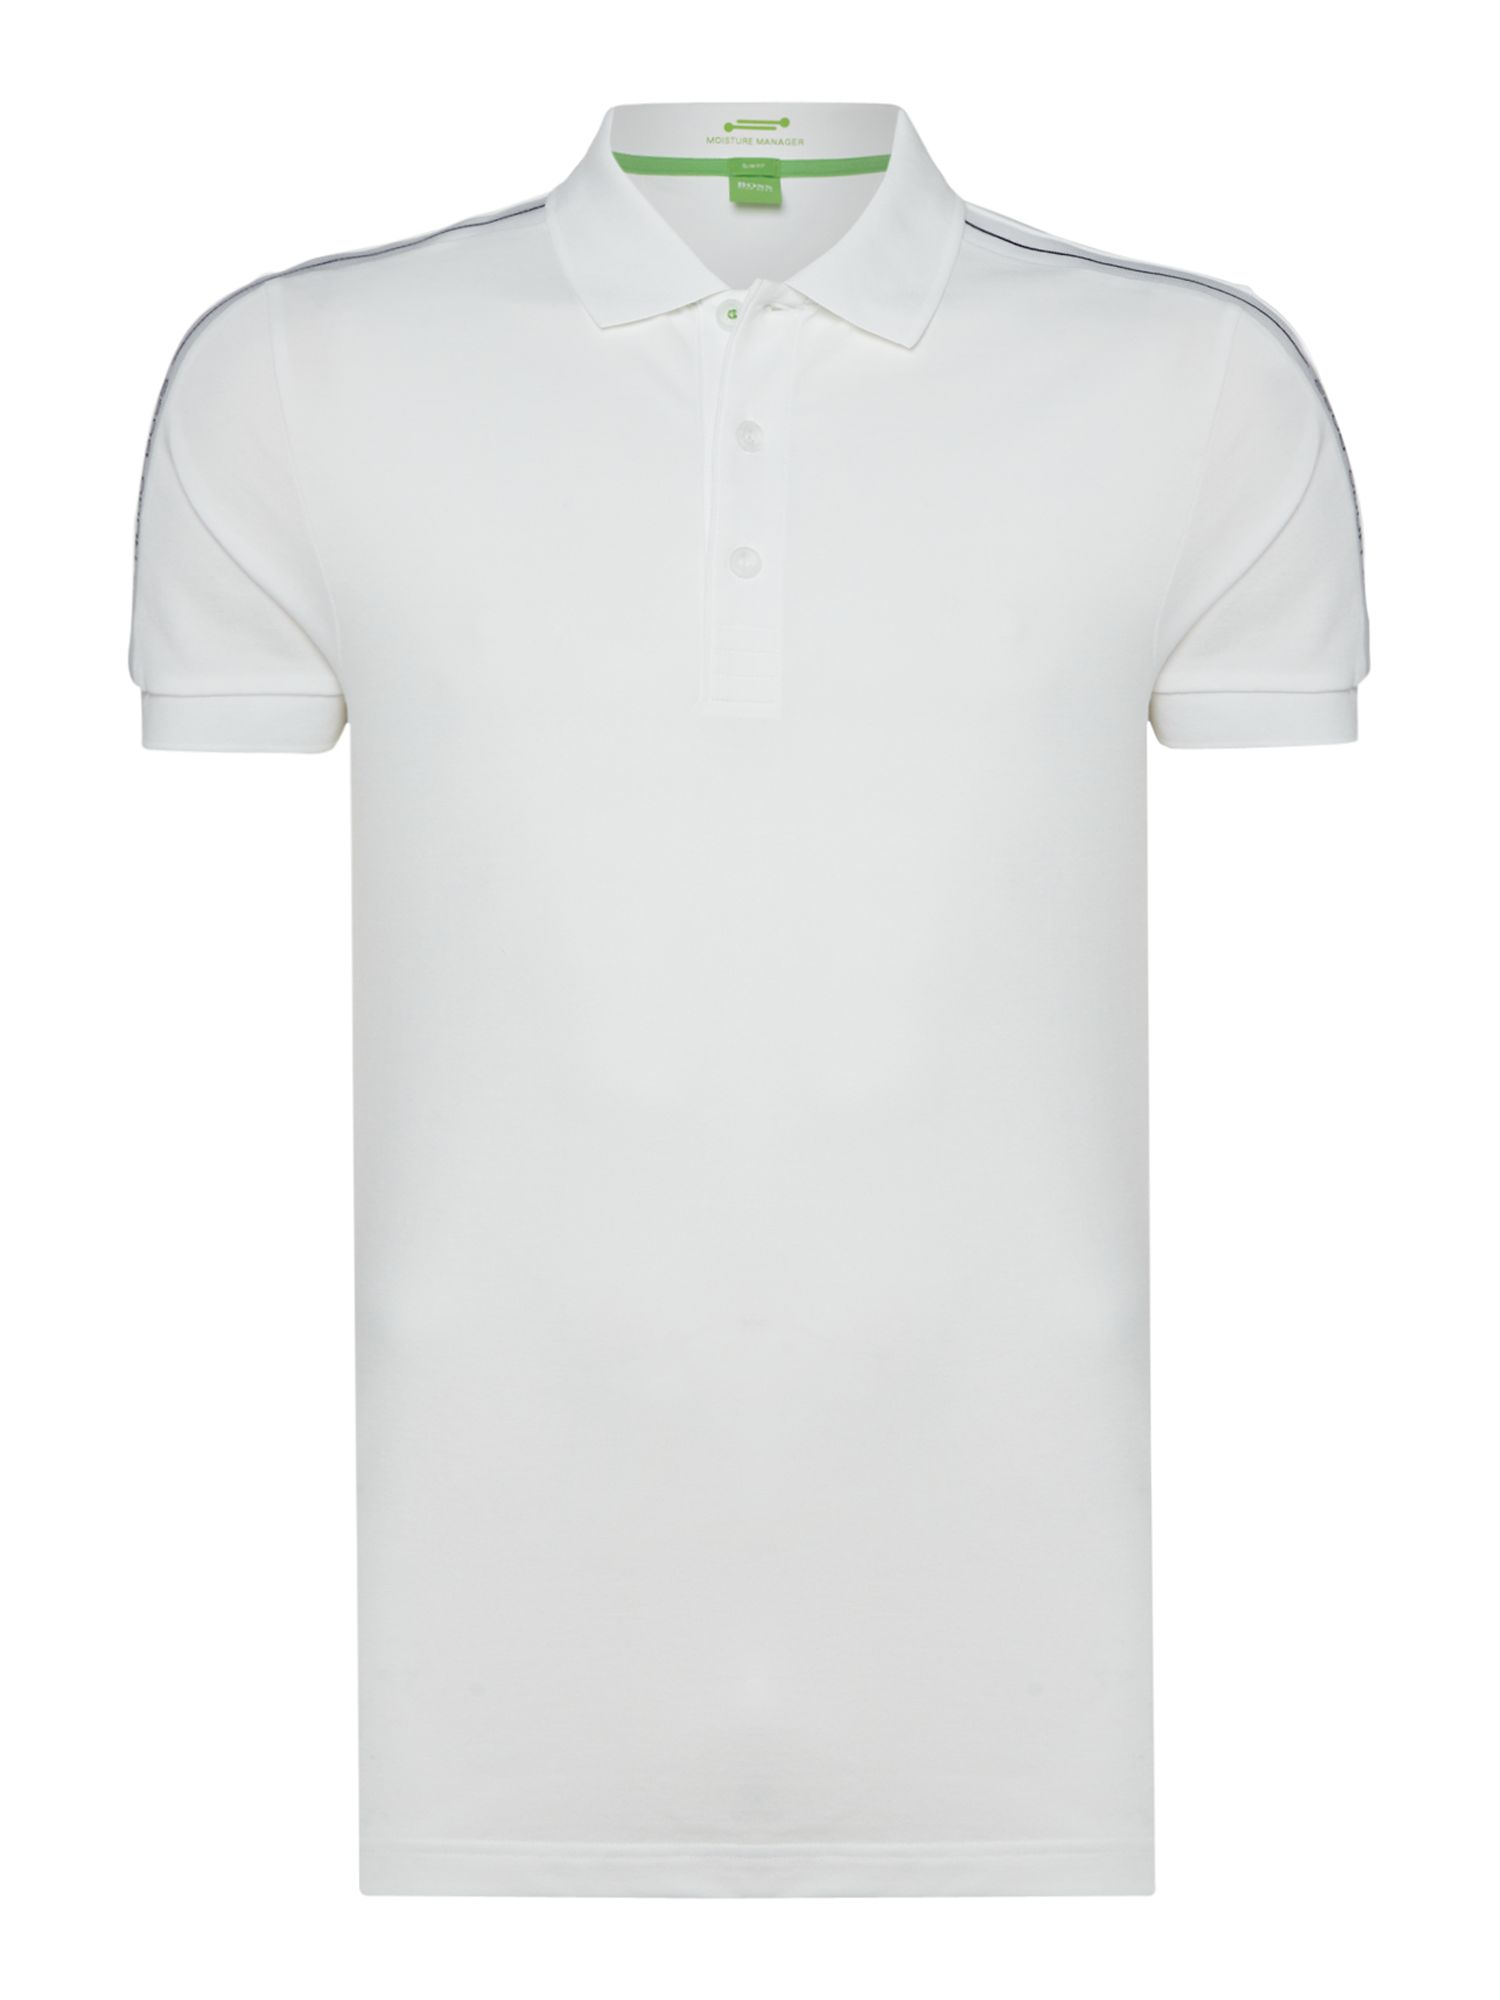 Men's Hugo Boss Paule Short Sleeve Slim Fit Polo Shirt, White